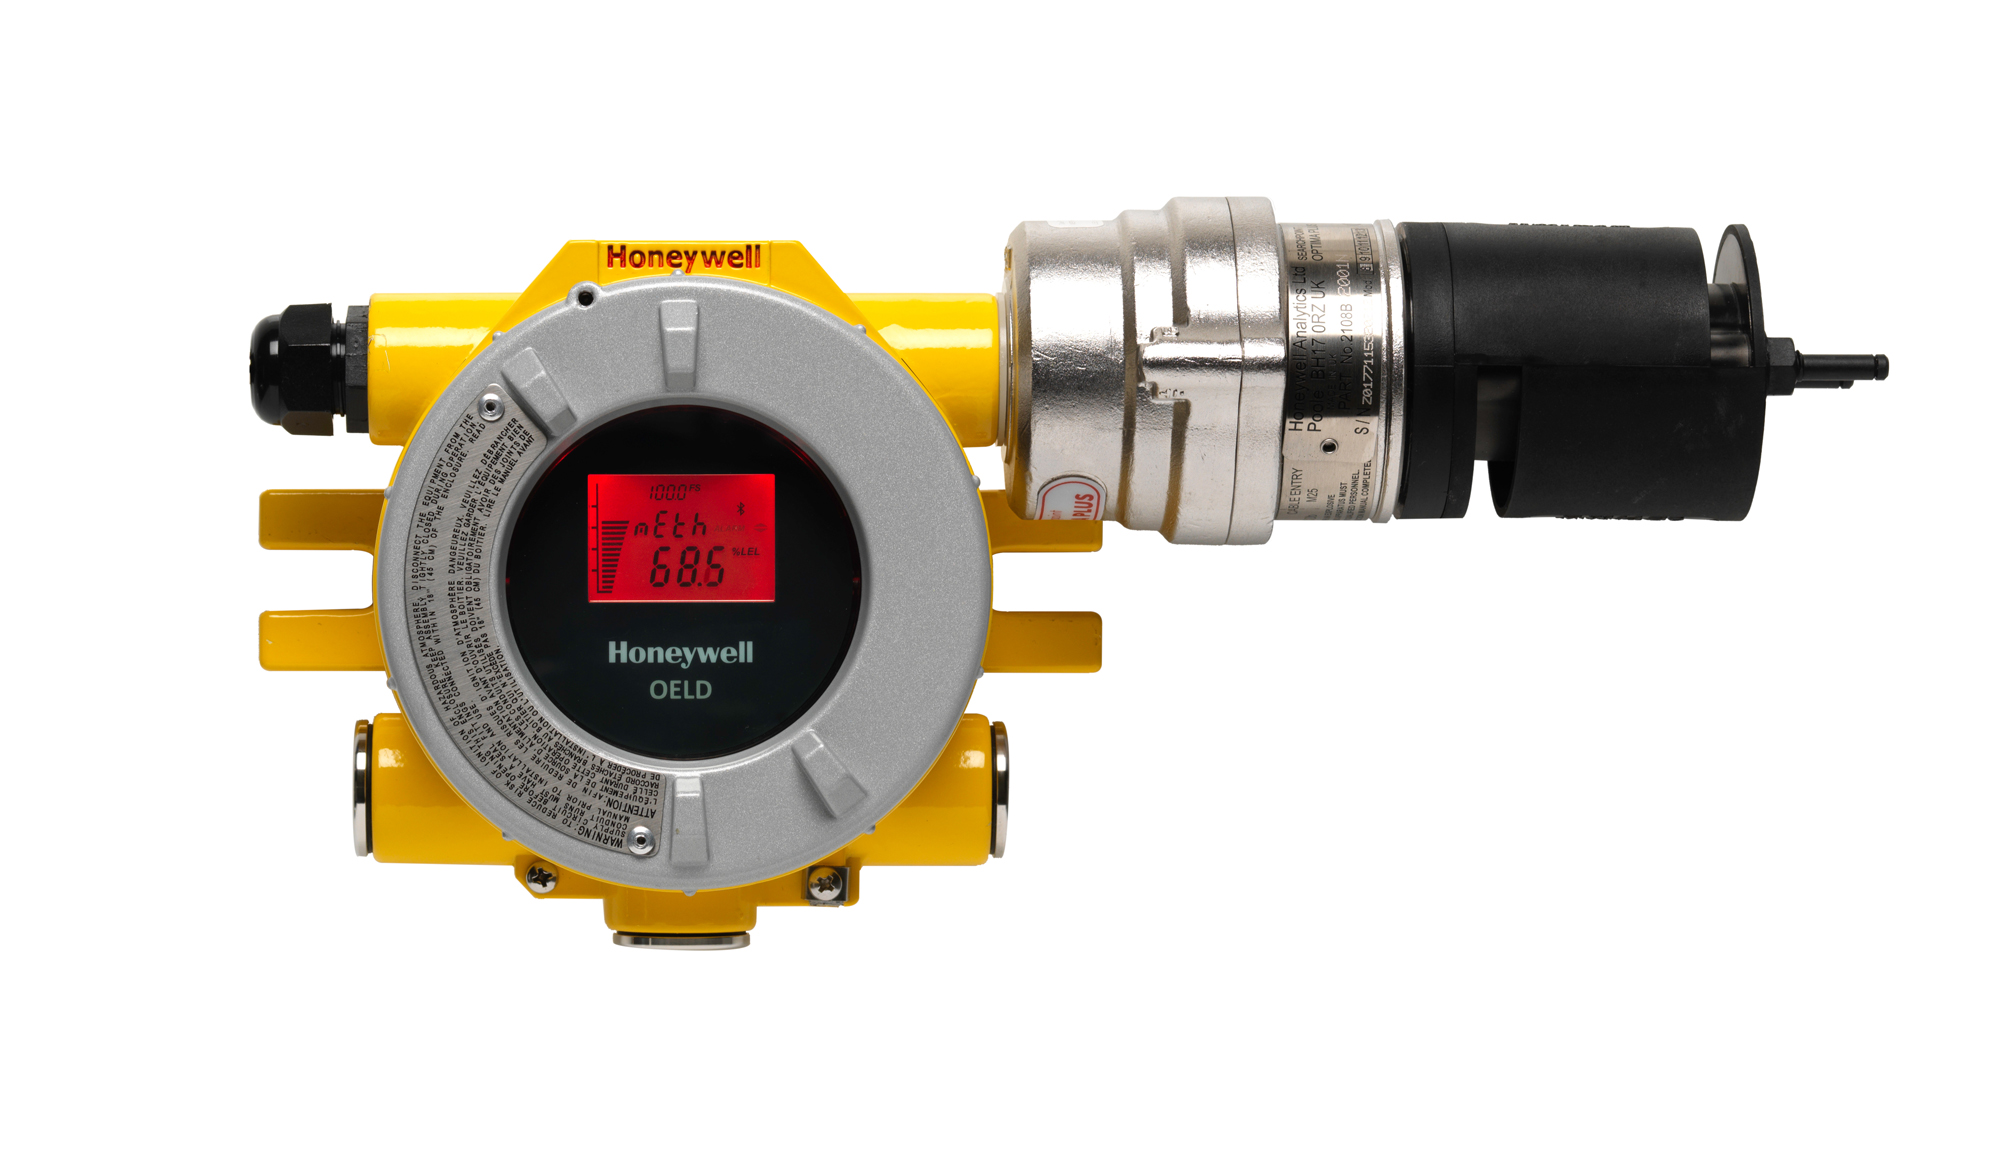 Honeywell Optima gas detector